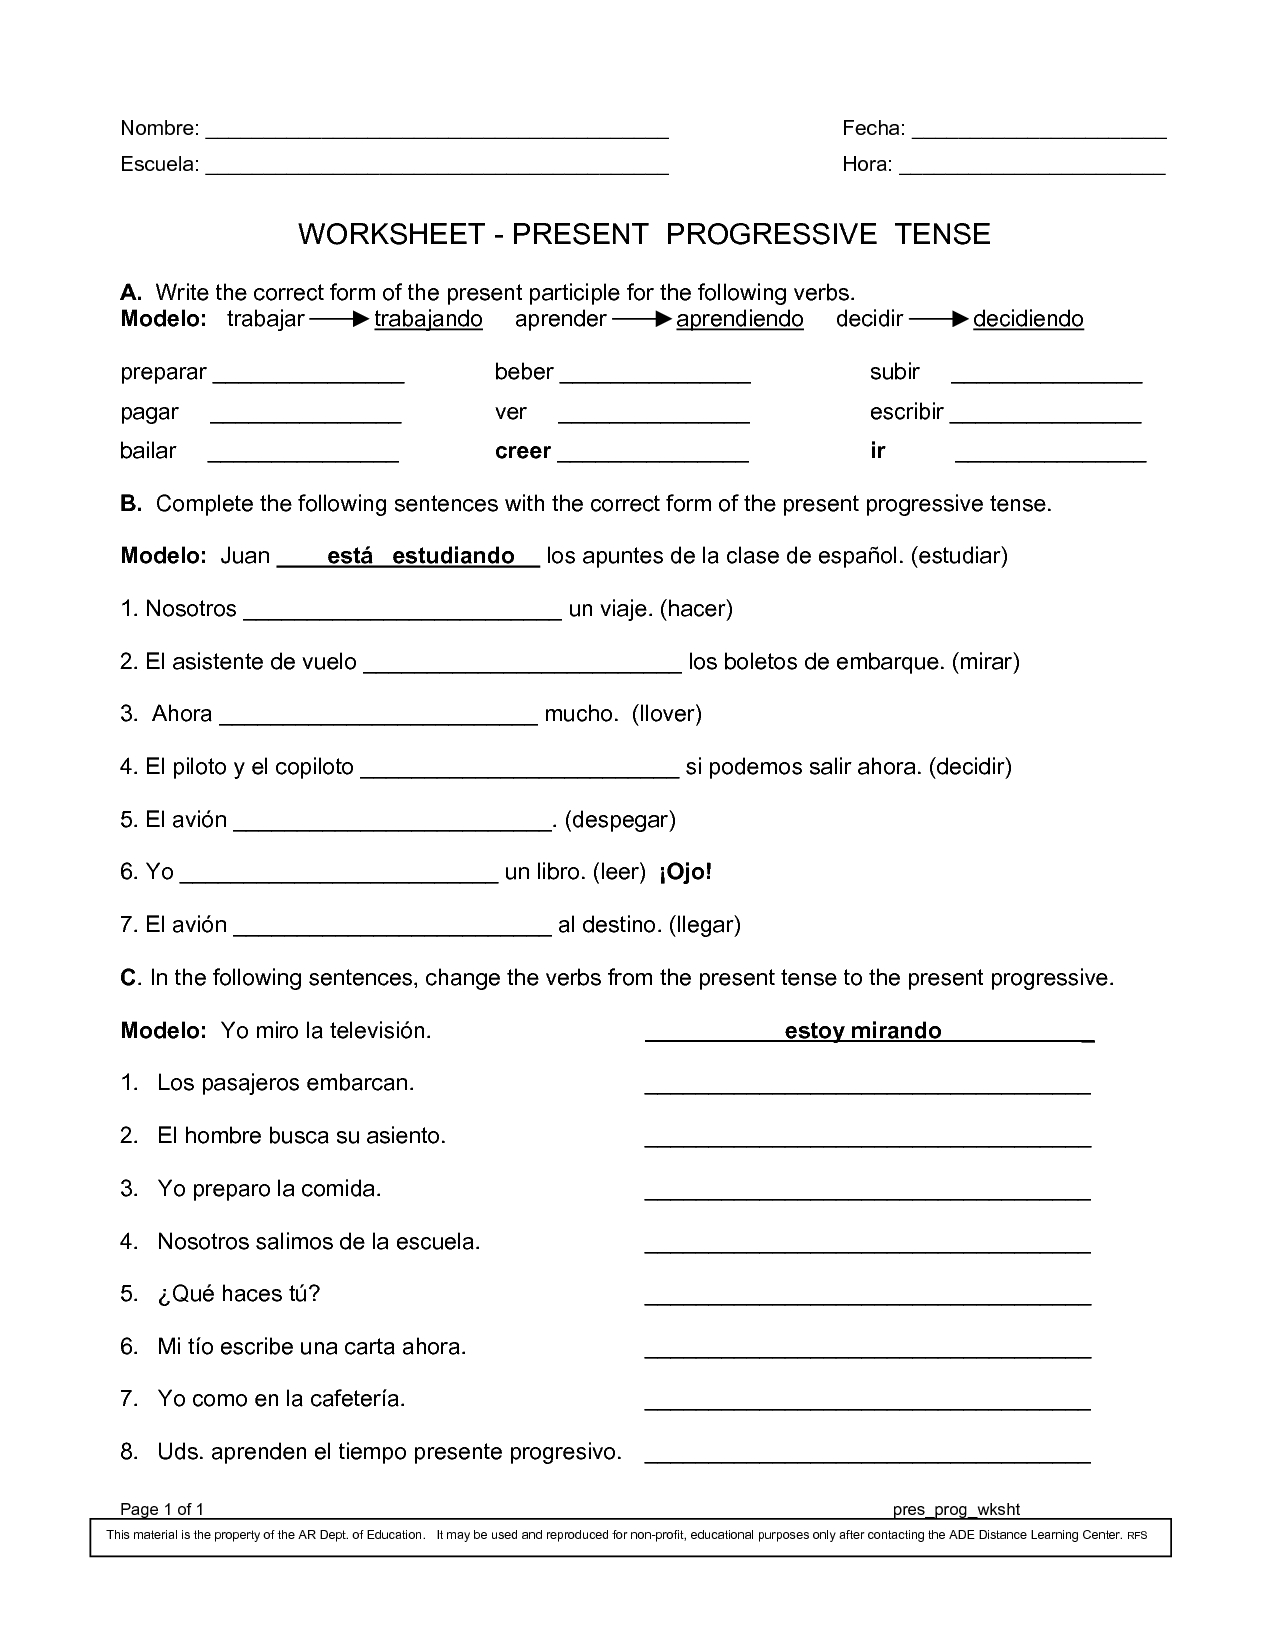 Spanish Worksheets Printables | Present Progressive Worksheet | Reflexive Verbs In Spanish Printable Worksheets